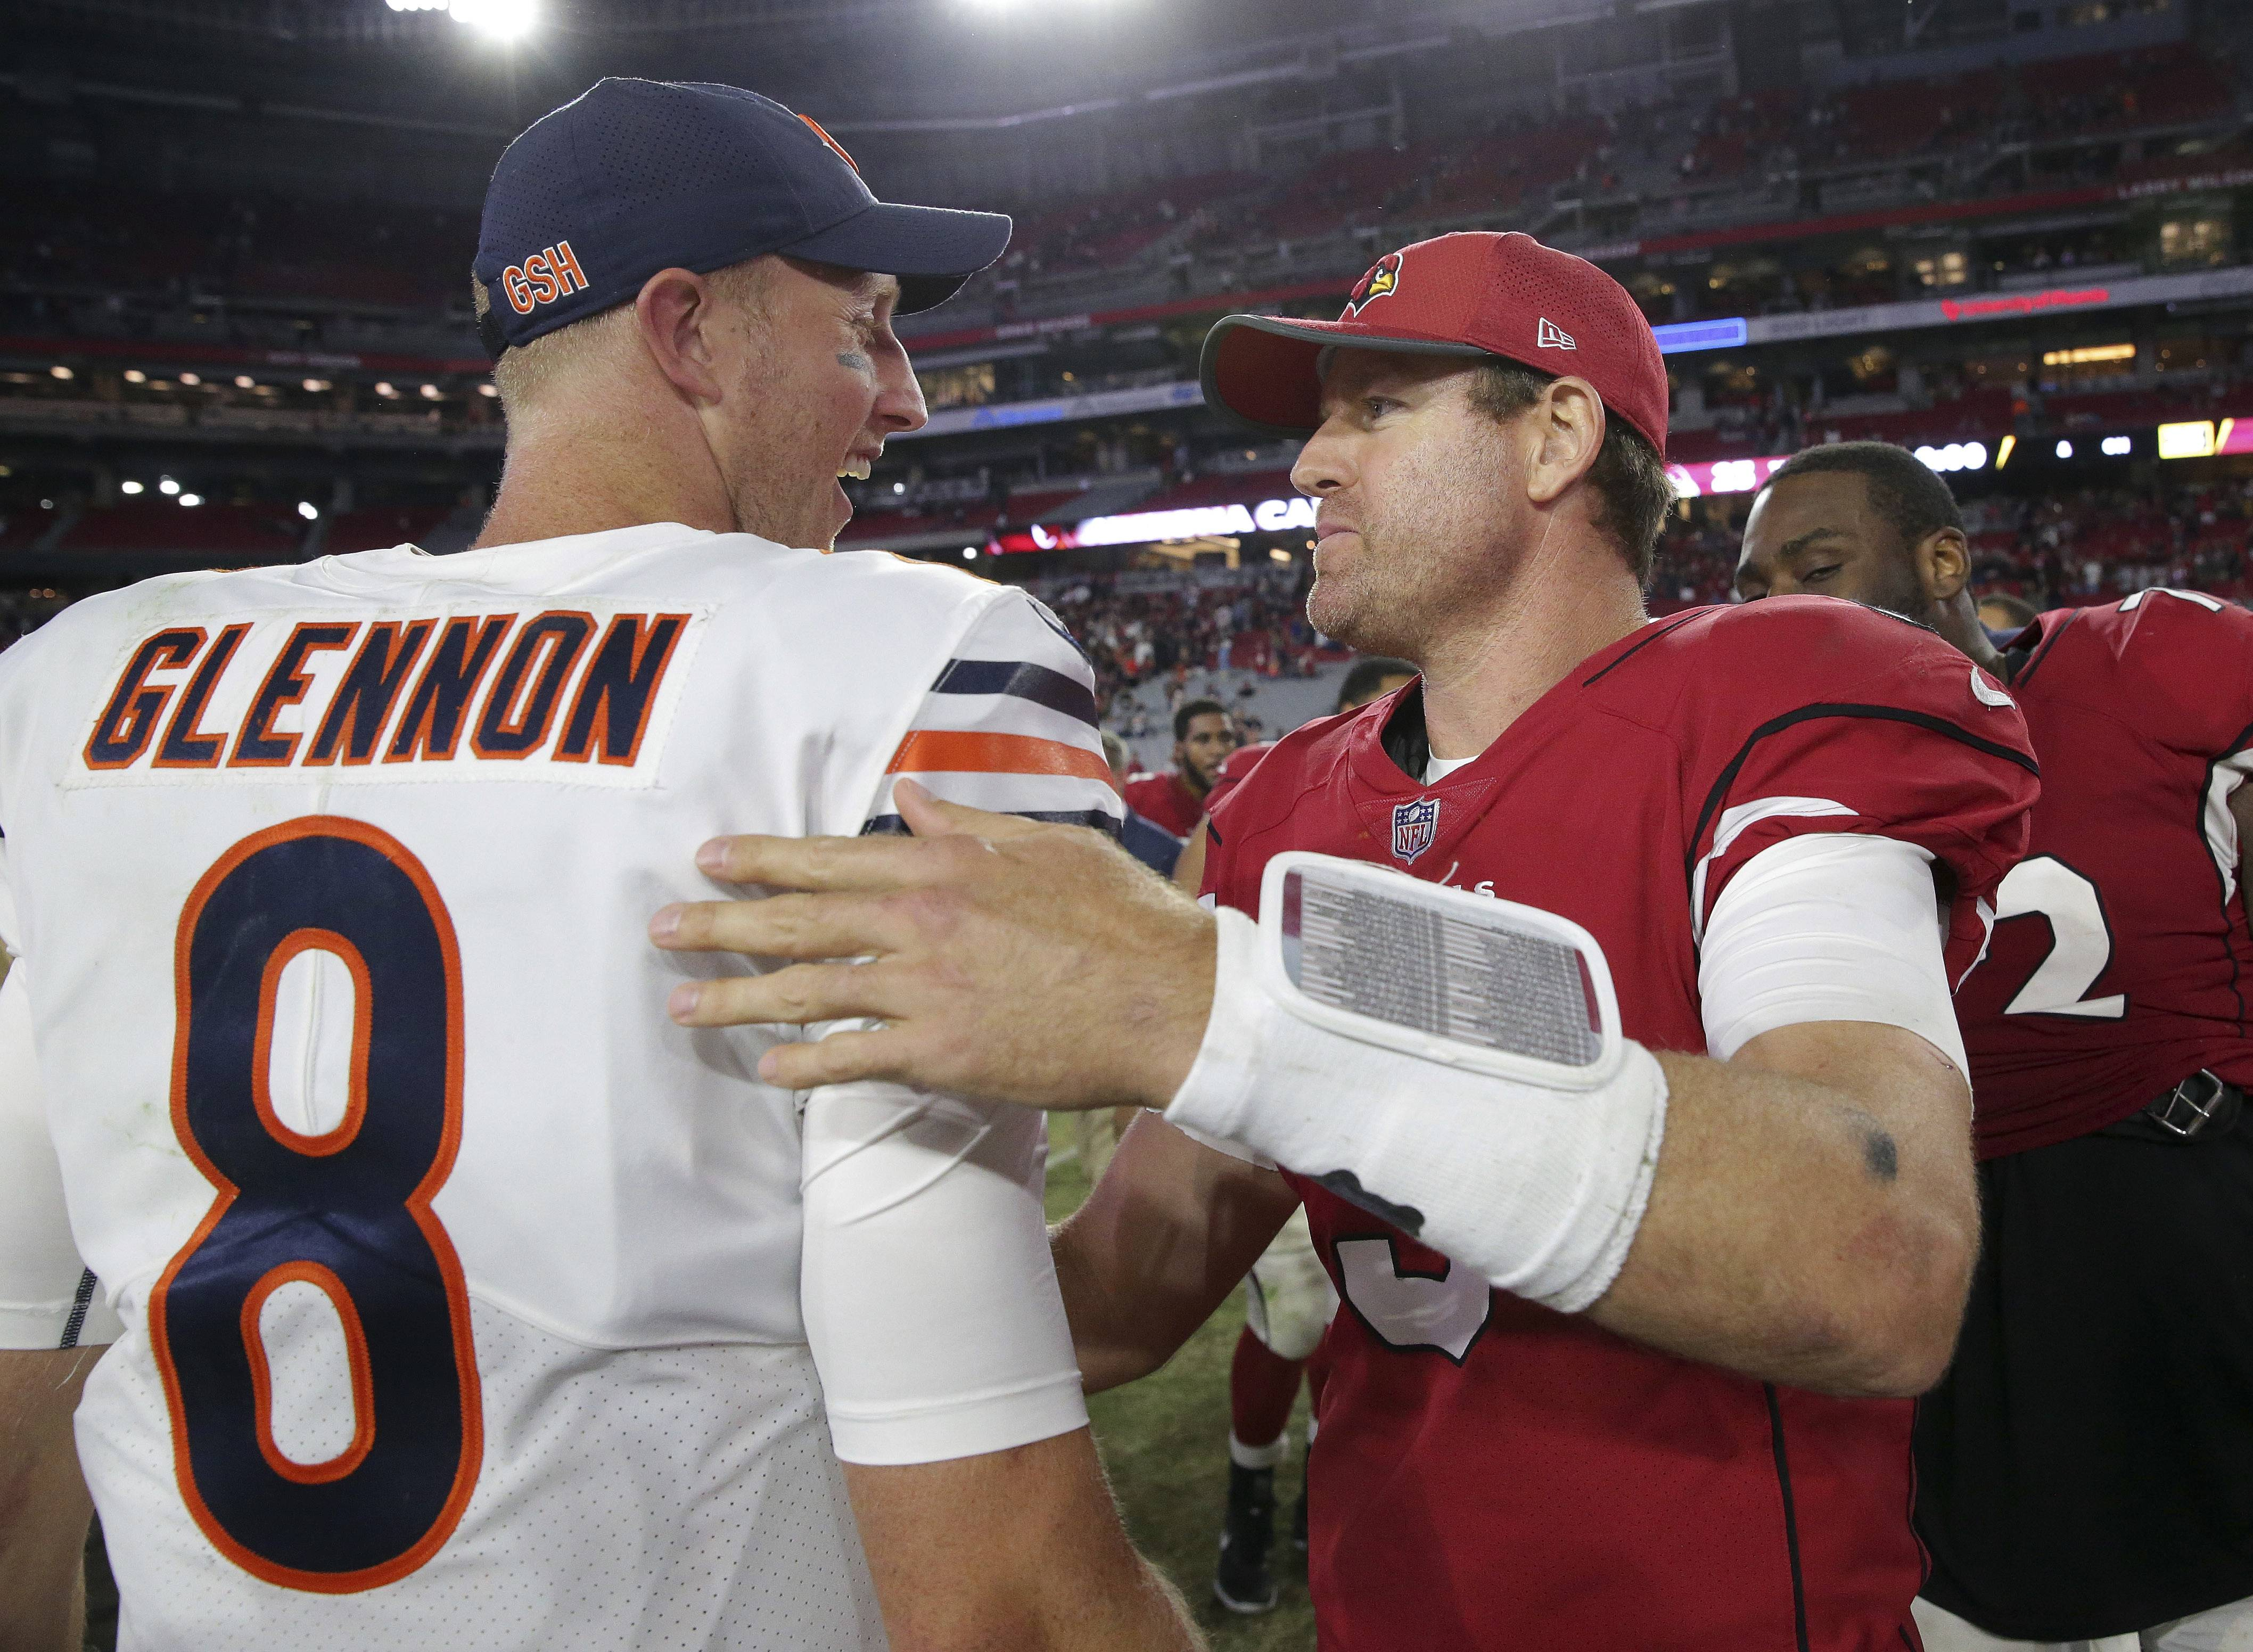 Chicago Bears quarterback Mike Glennon (8) greets Arizona Cardinals quarterback Carson Palmer (3) after an preseason NFL football game, Saturday, Aug. 19, 2017, in Glendale, Ariz. The Bears won 24-23. (AP Photo/Ralph Freso)